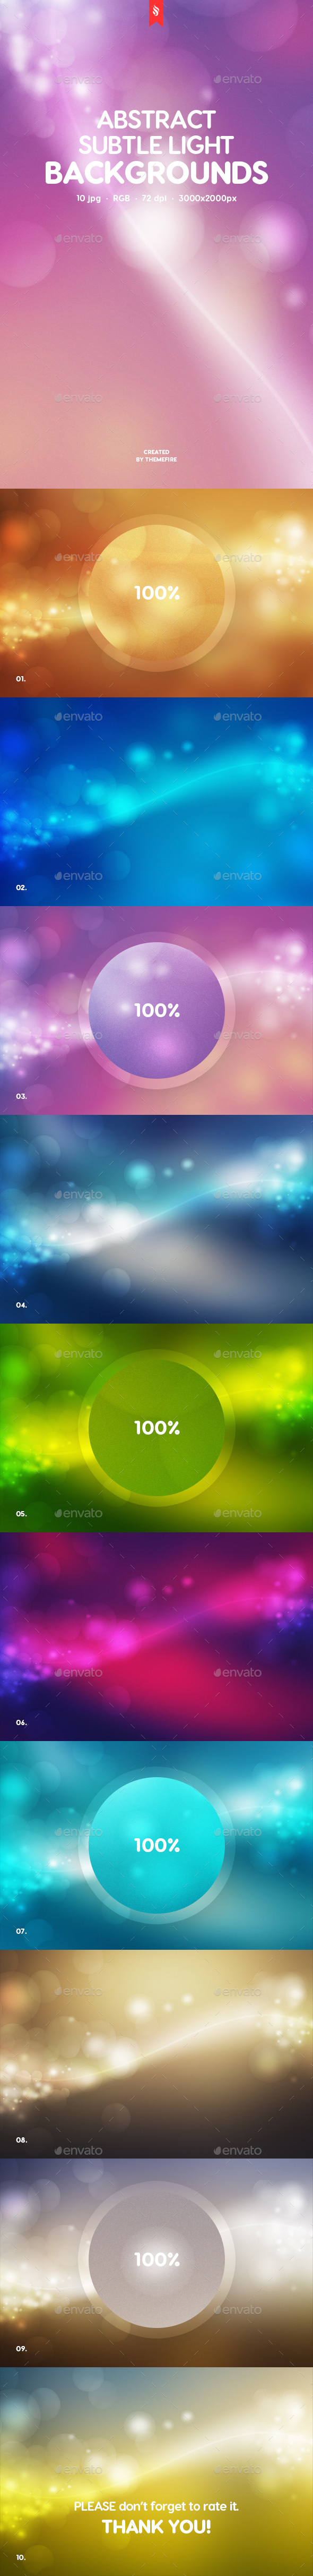 Subtle Light Backgrounds - Abstract Backgrounds